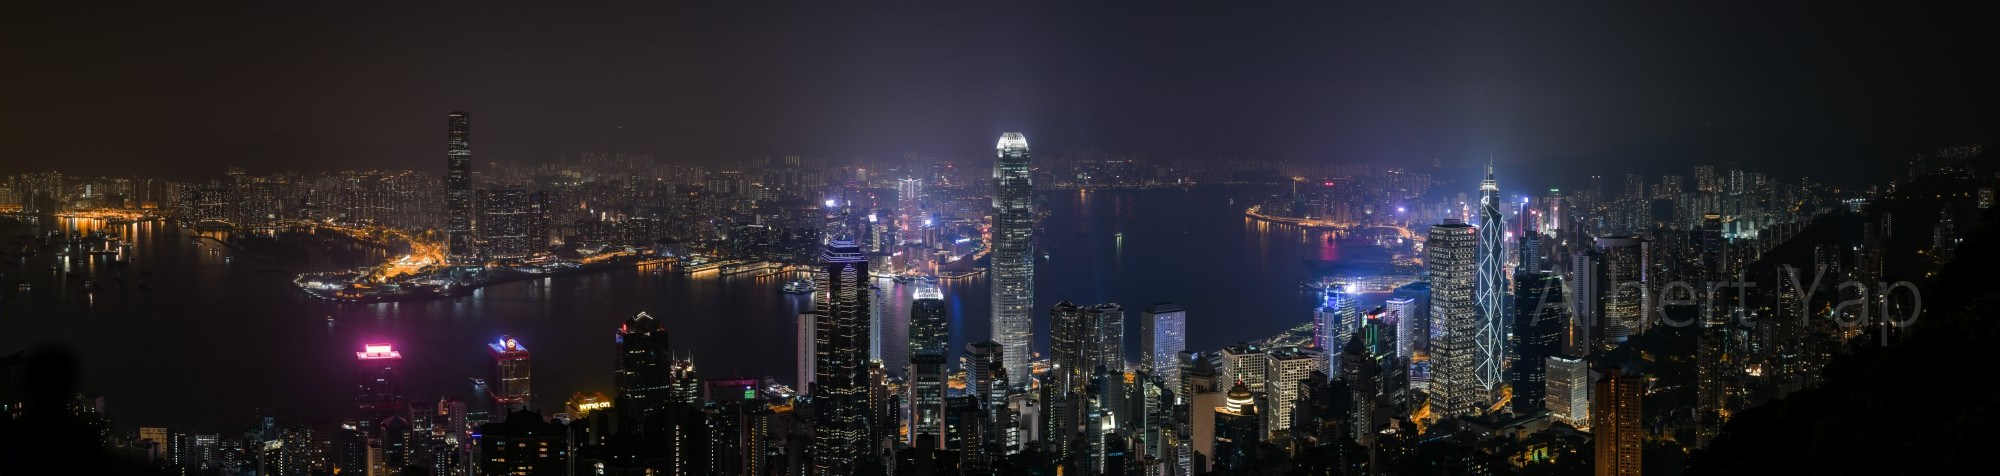 The magnificent view of Hong Kong Night cityscape